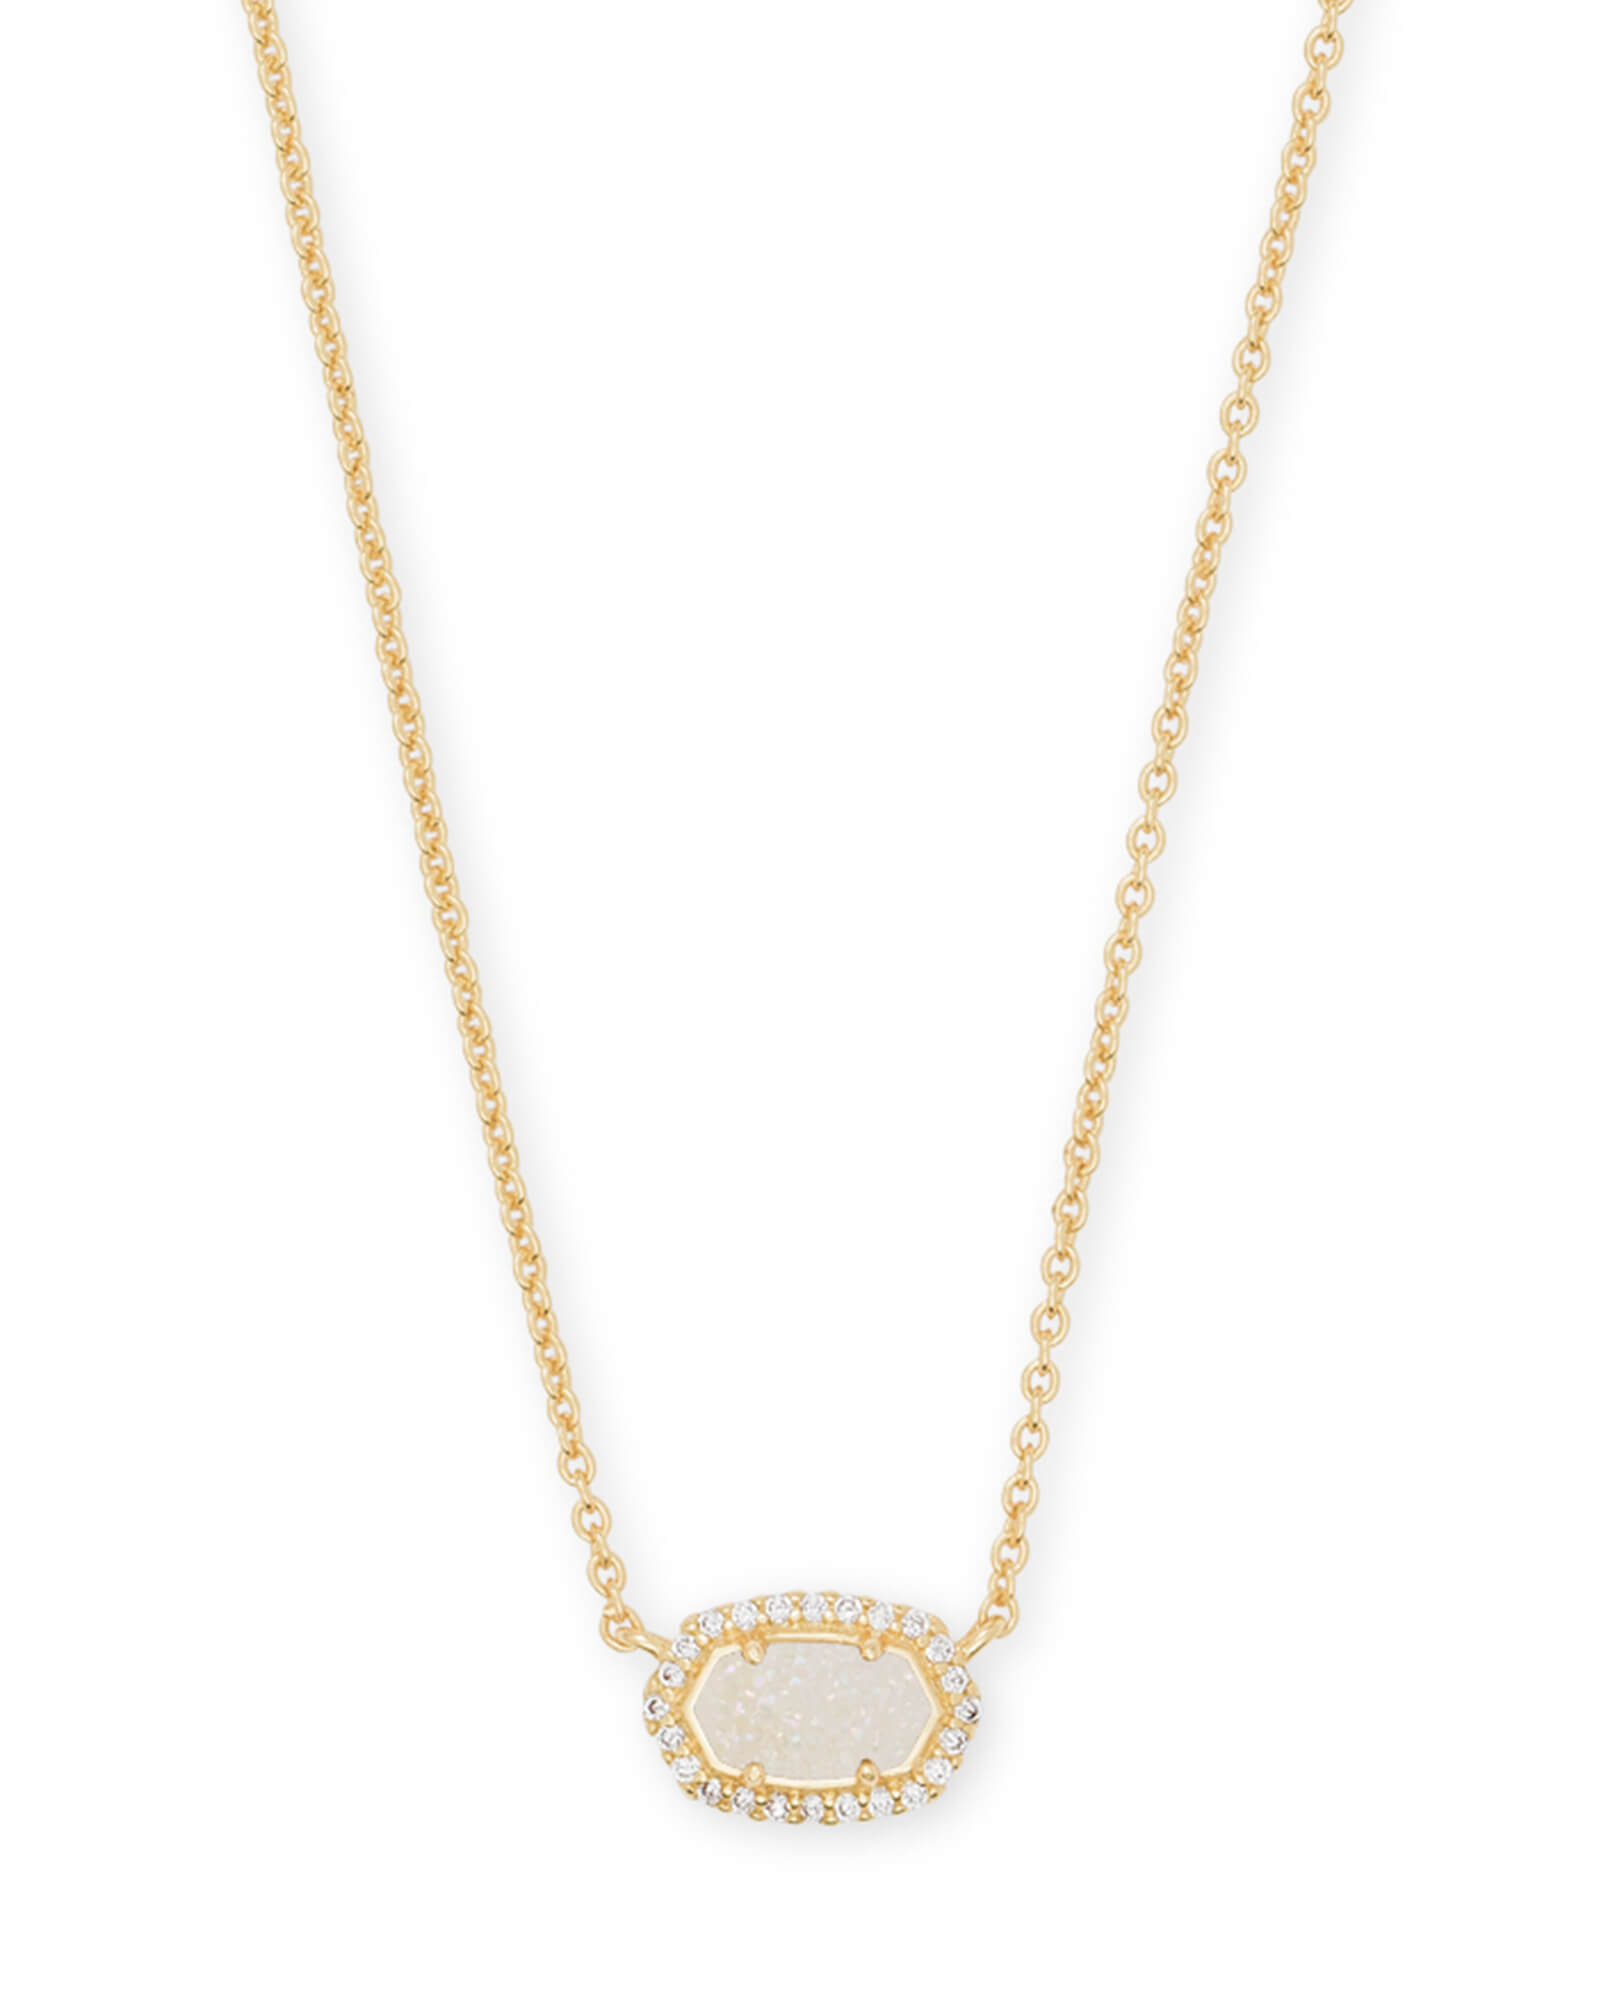 Chelsea Gold Pendant Necklace In Iridescent Drusy | Kendra Scott For Most Current Sparkling Square Halo Pendant Necklaces (View 6 of 25)